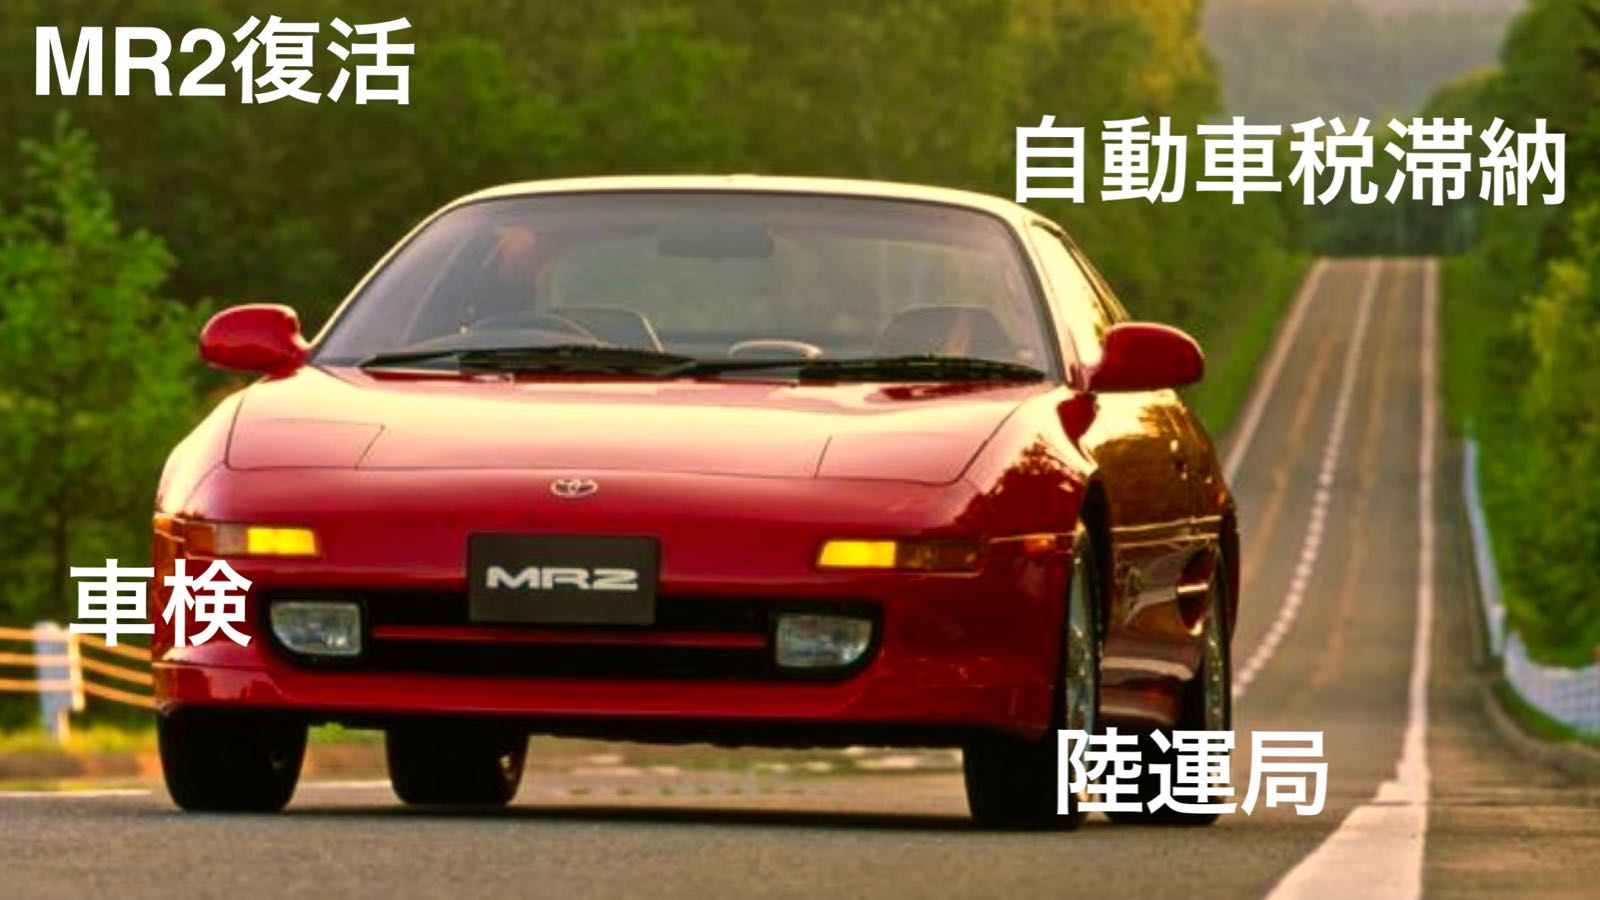 0153 MR2 Restore Plan  Part 26 Eye catch image